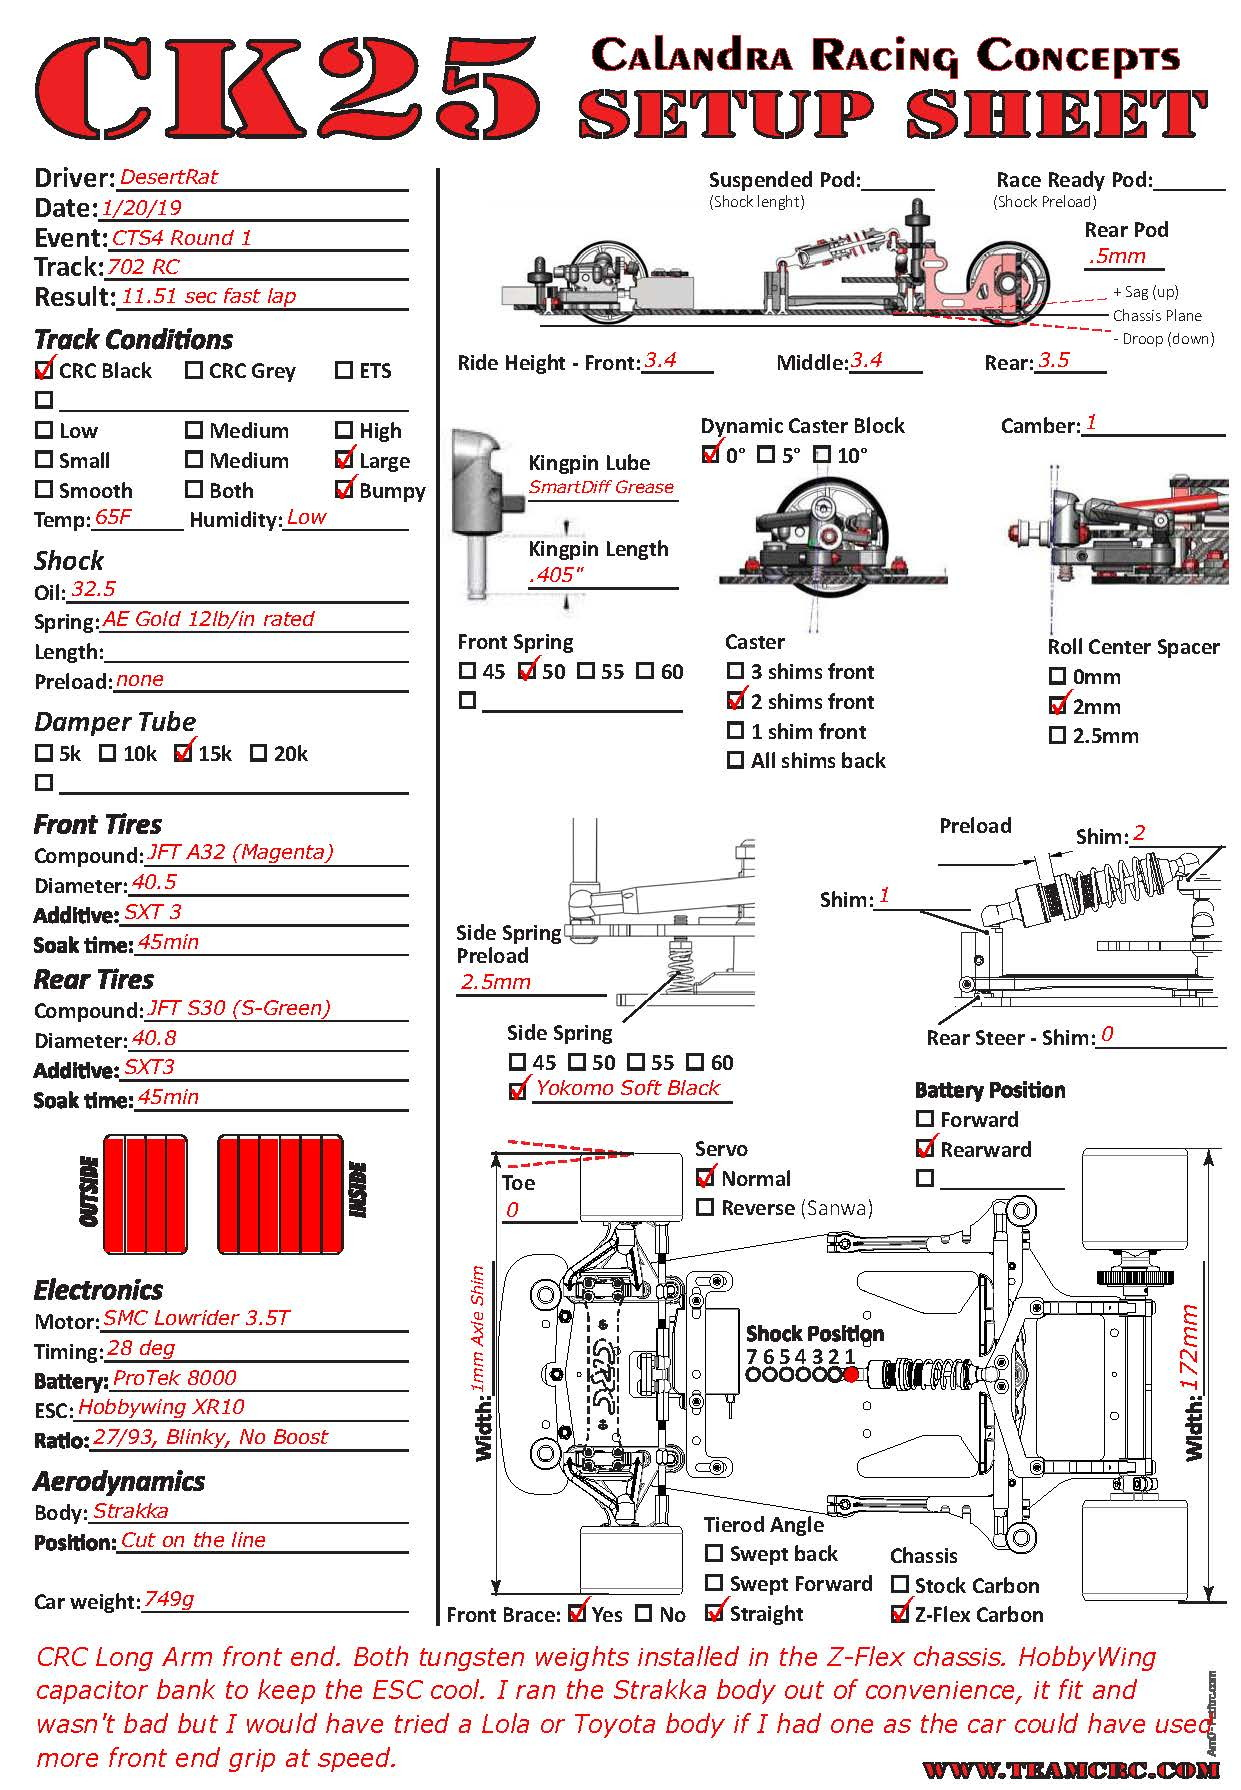 Team CRC Xti 1/12th Scale!! - Page 177 - R/C Tech Forums